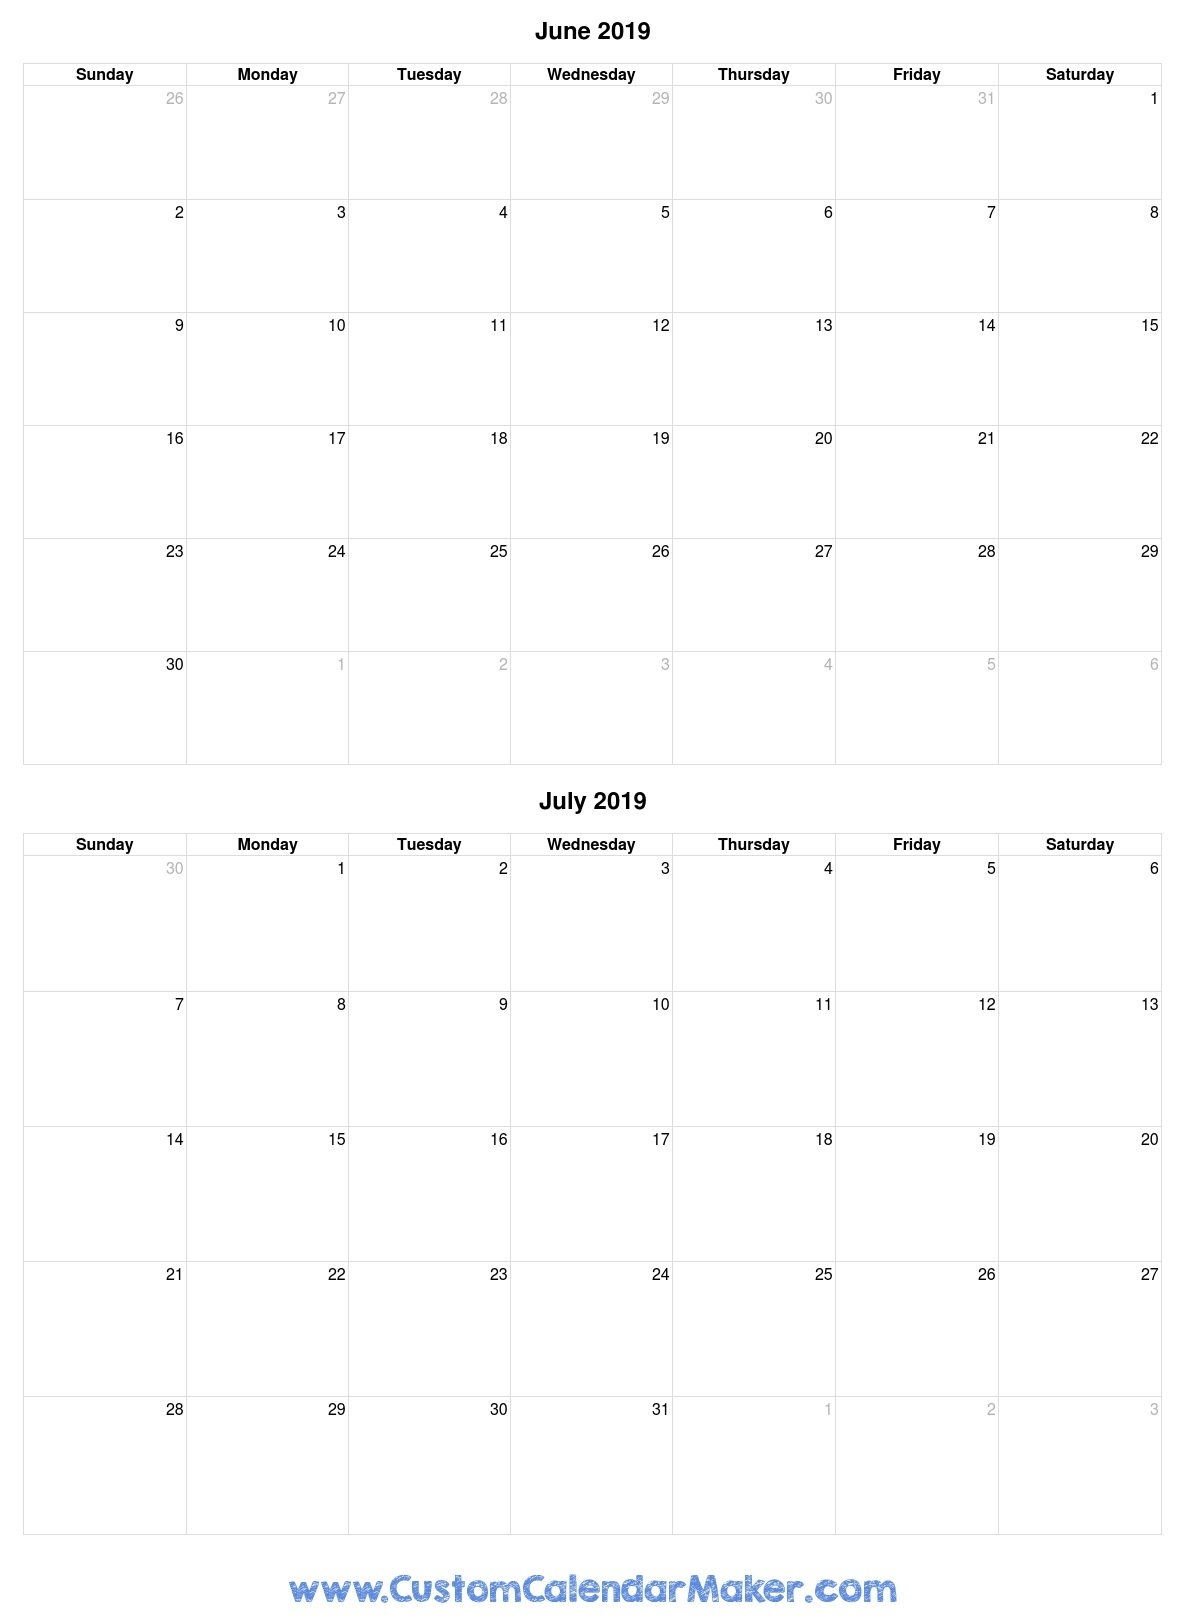 June And July 2019 Free Printable Calendar Template pertaining to Printable Calendar For May June July